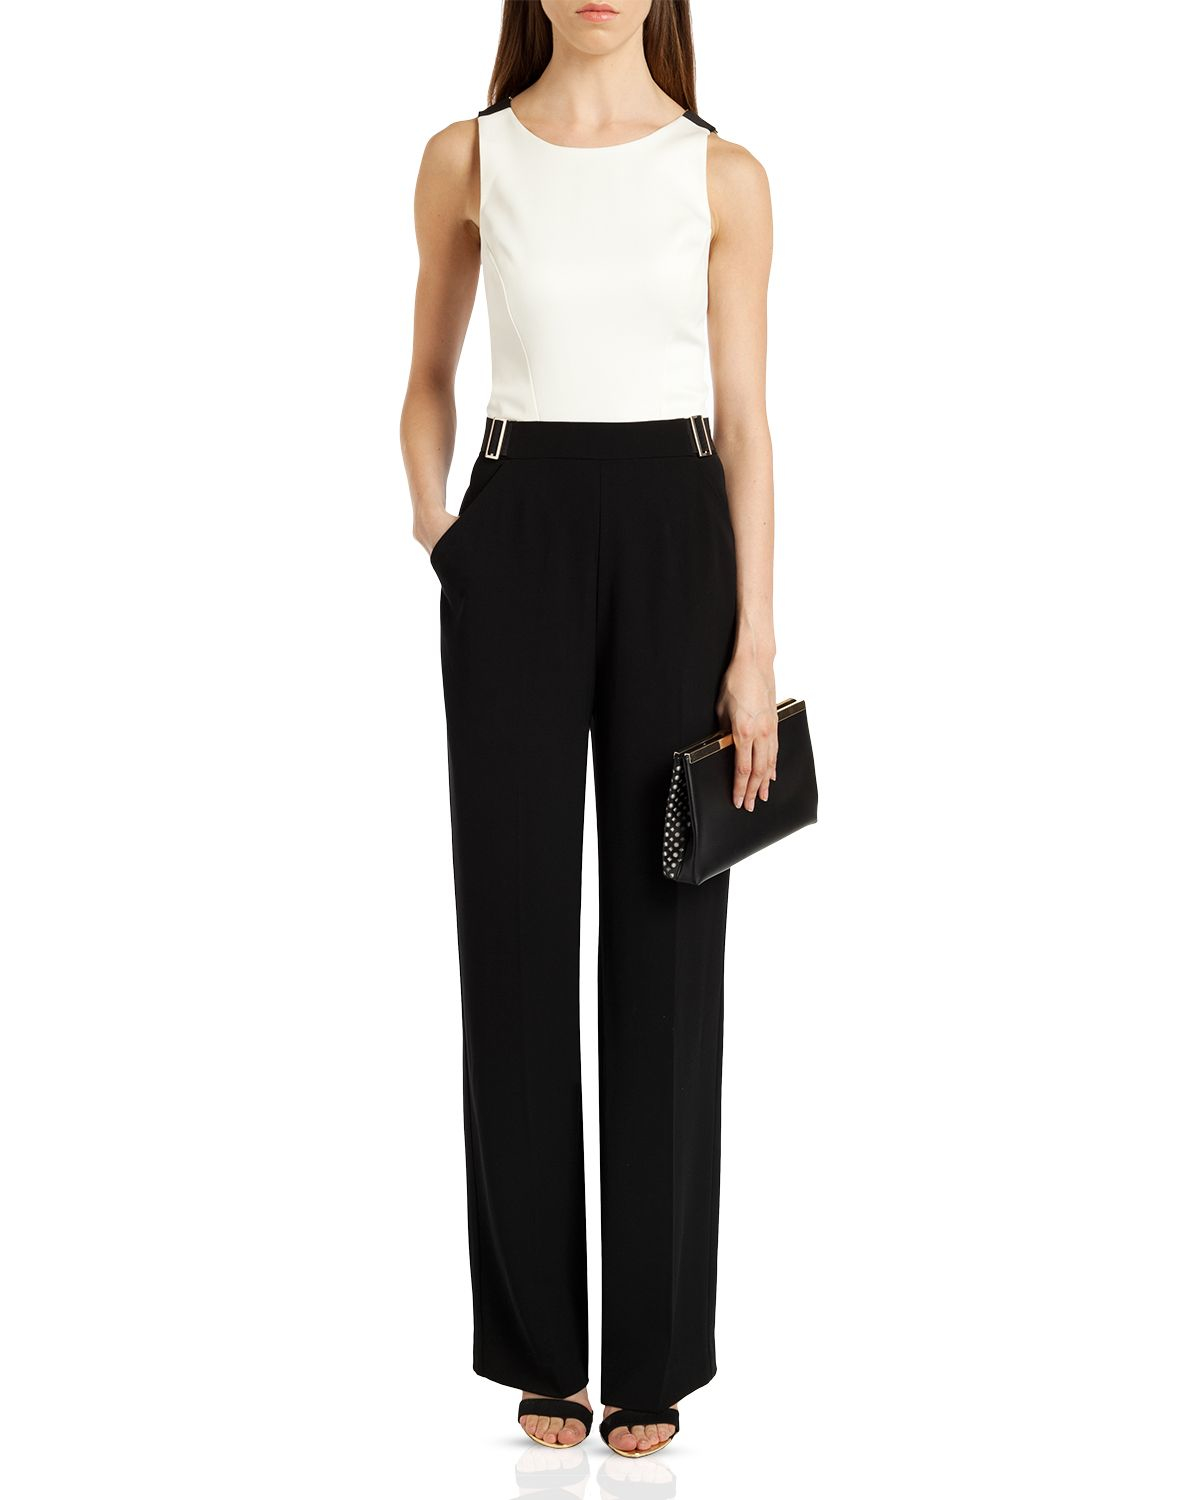 7b548d73fd4a Lyst - Ted Baker Lydya Crossover Back Jumpsuit in Black